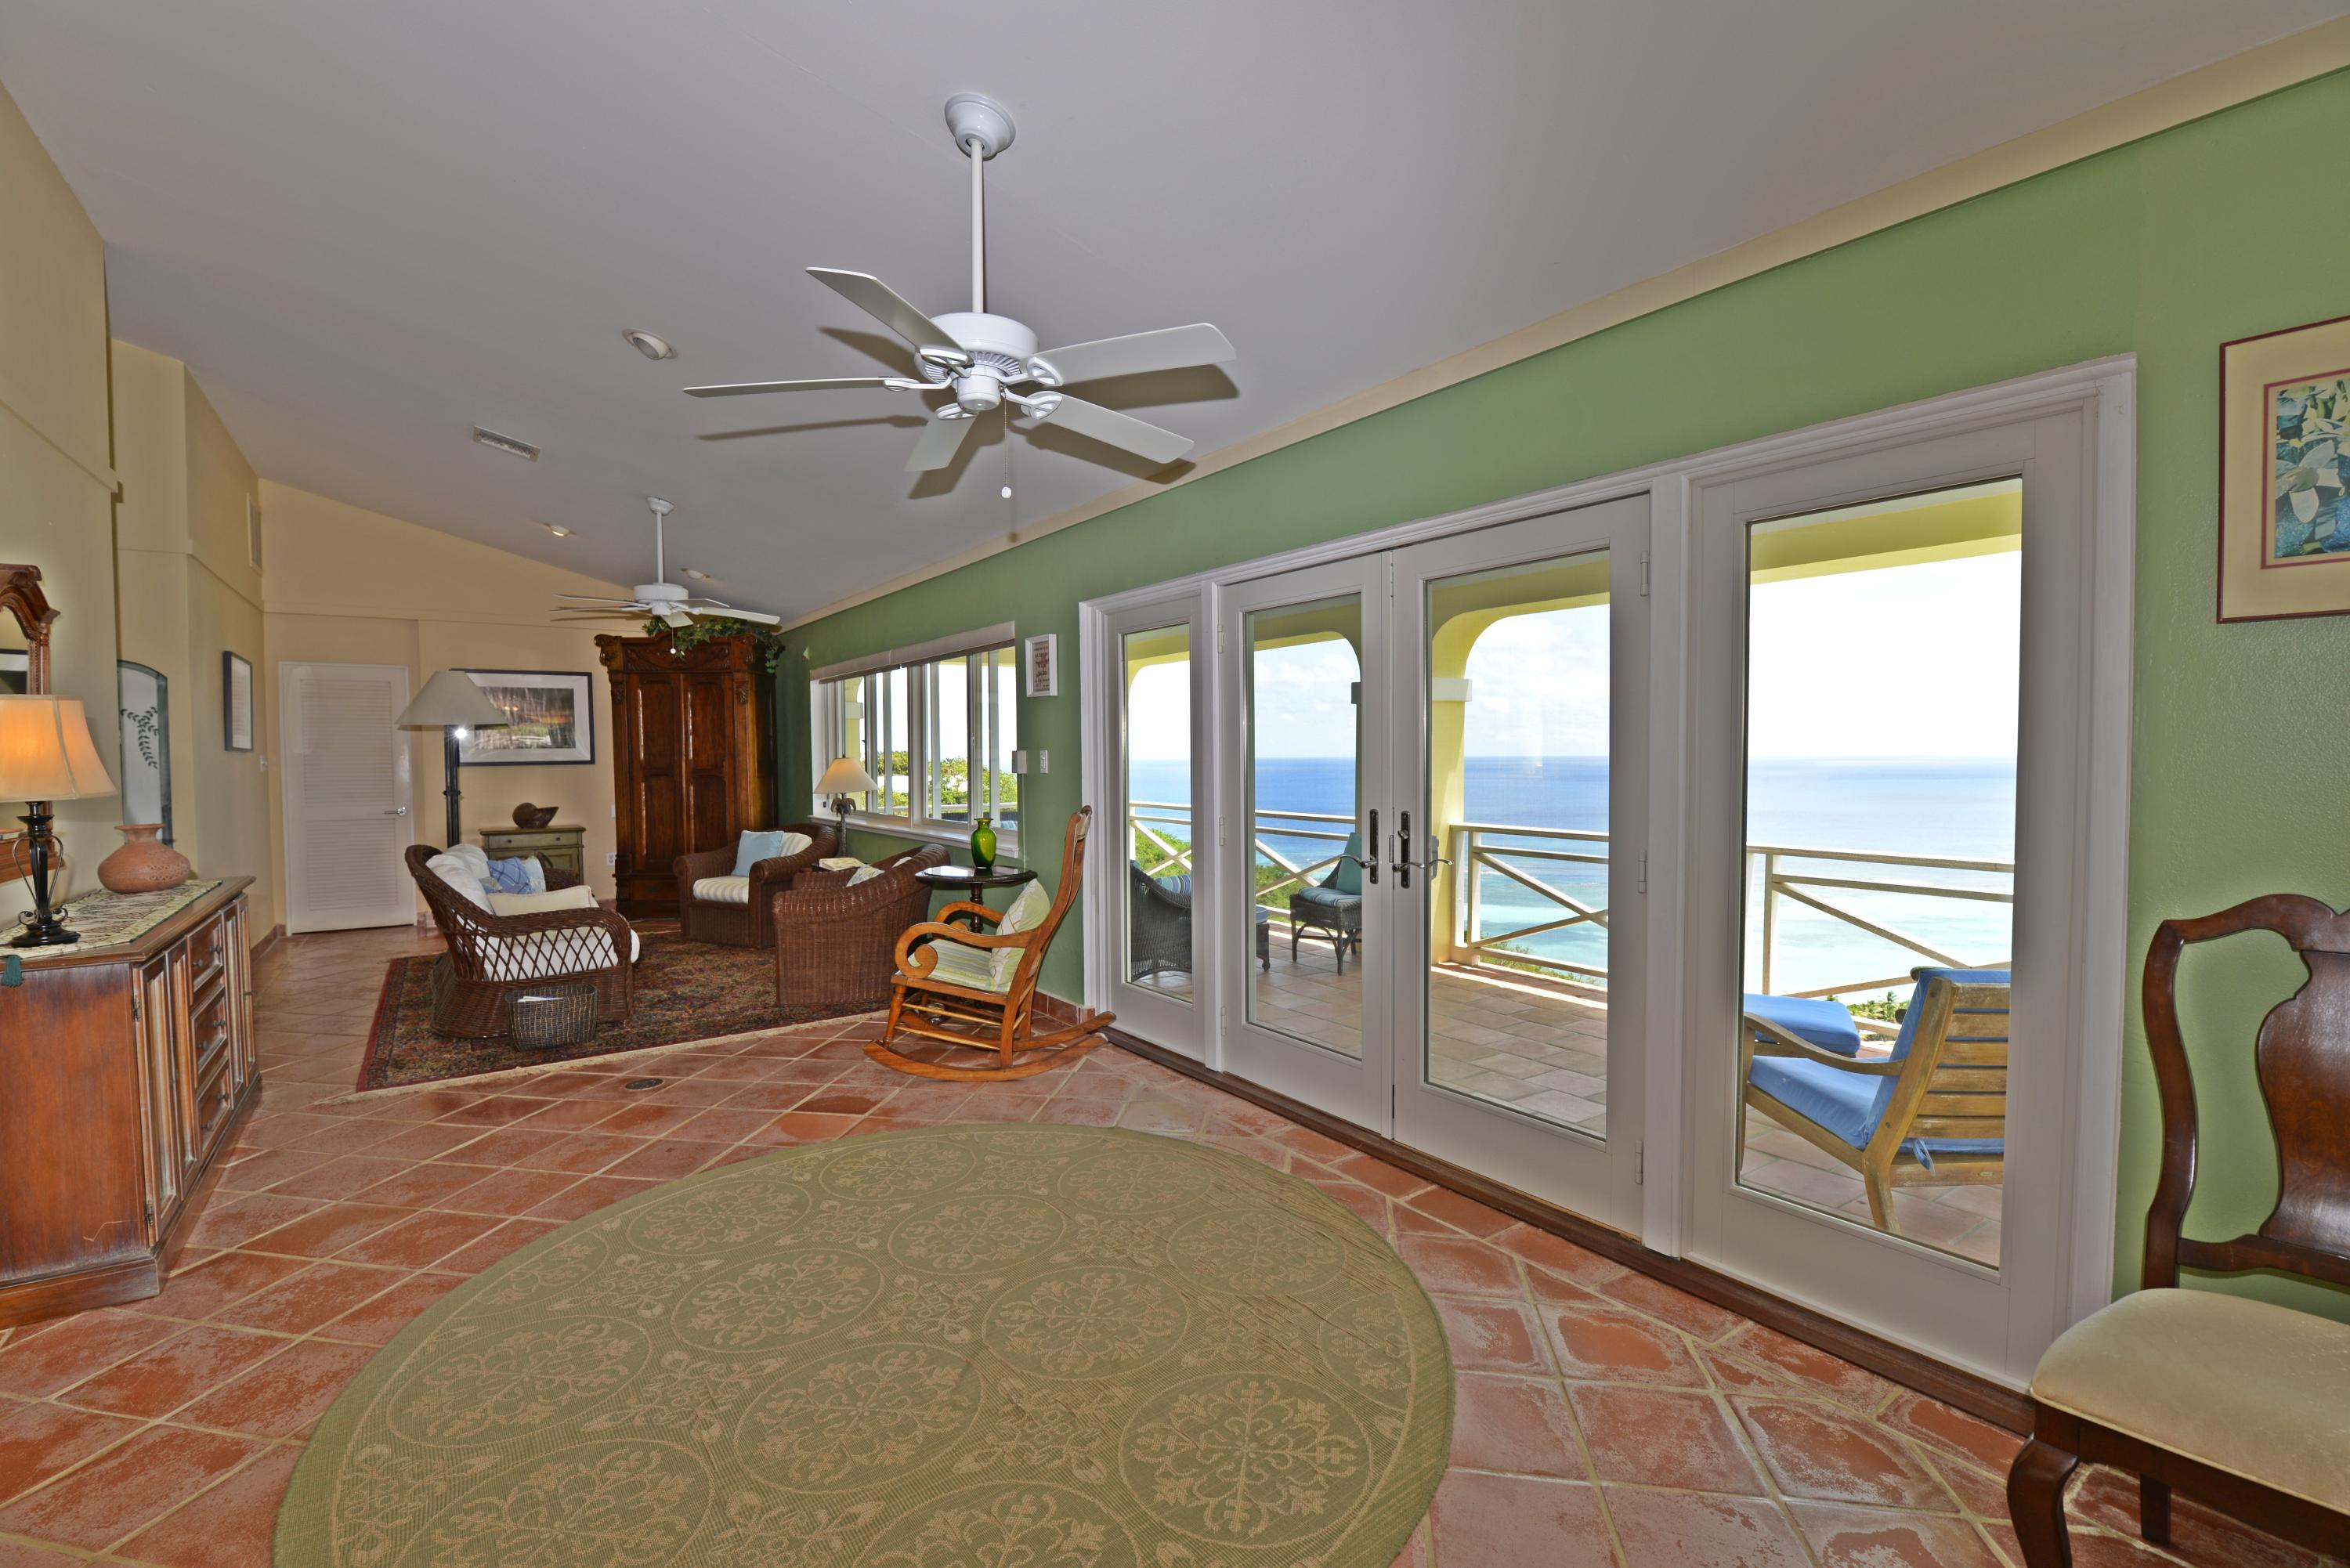 Ample space to entertain with a view